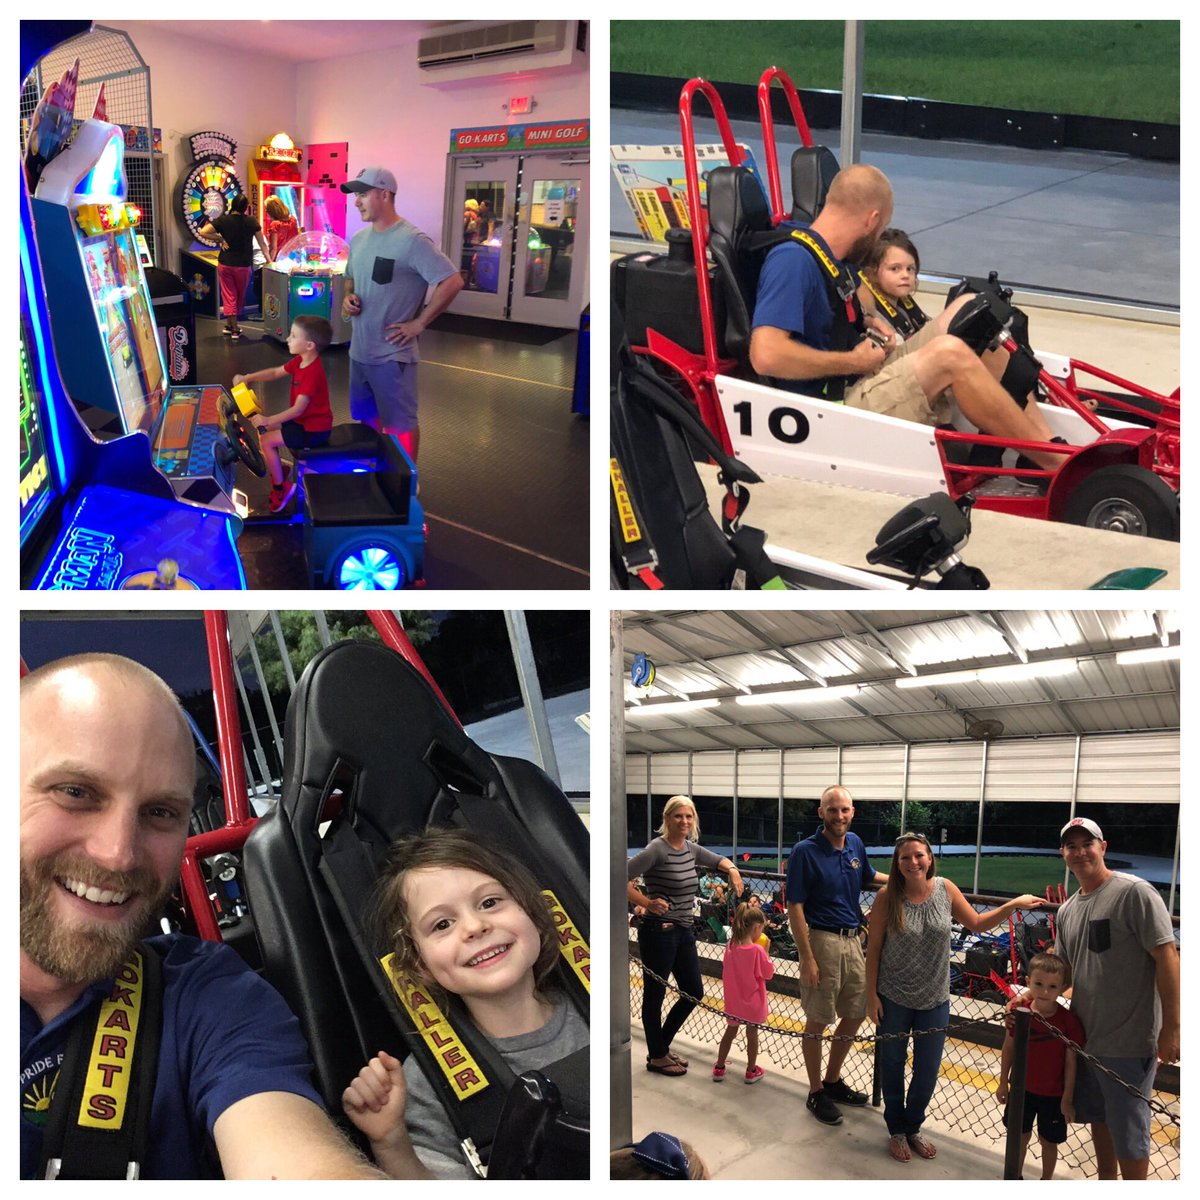 test Twitter Media - @Proud2BeAtPride Spirit Night was a BLAST 💥!  Thanks @Cooperdad121712 @_Coach_Rice_ @MichelleMara6 @AmyDrummond9 and the entire Pride family for participating.... special shout out to Coach Rice for taking my little London on the go-cart track 💪!  Glad you survived 😳😂! https://t.co/ZciwSPWmEc